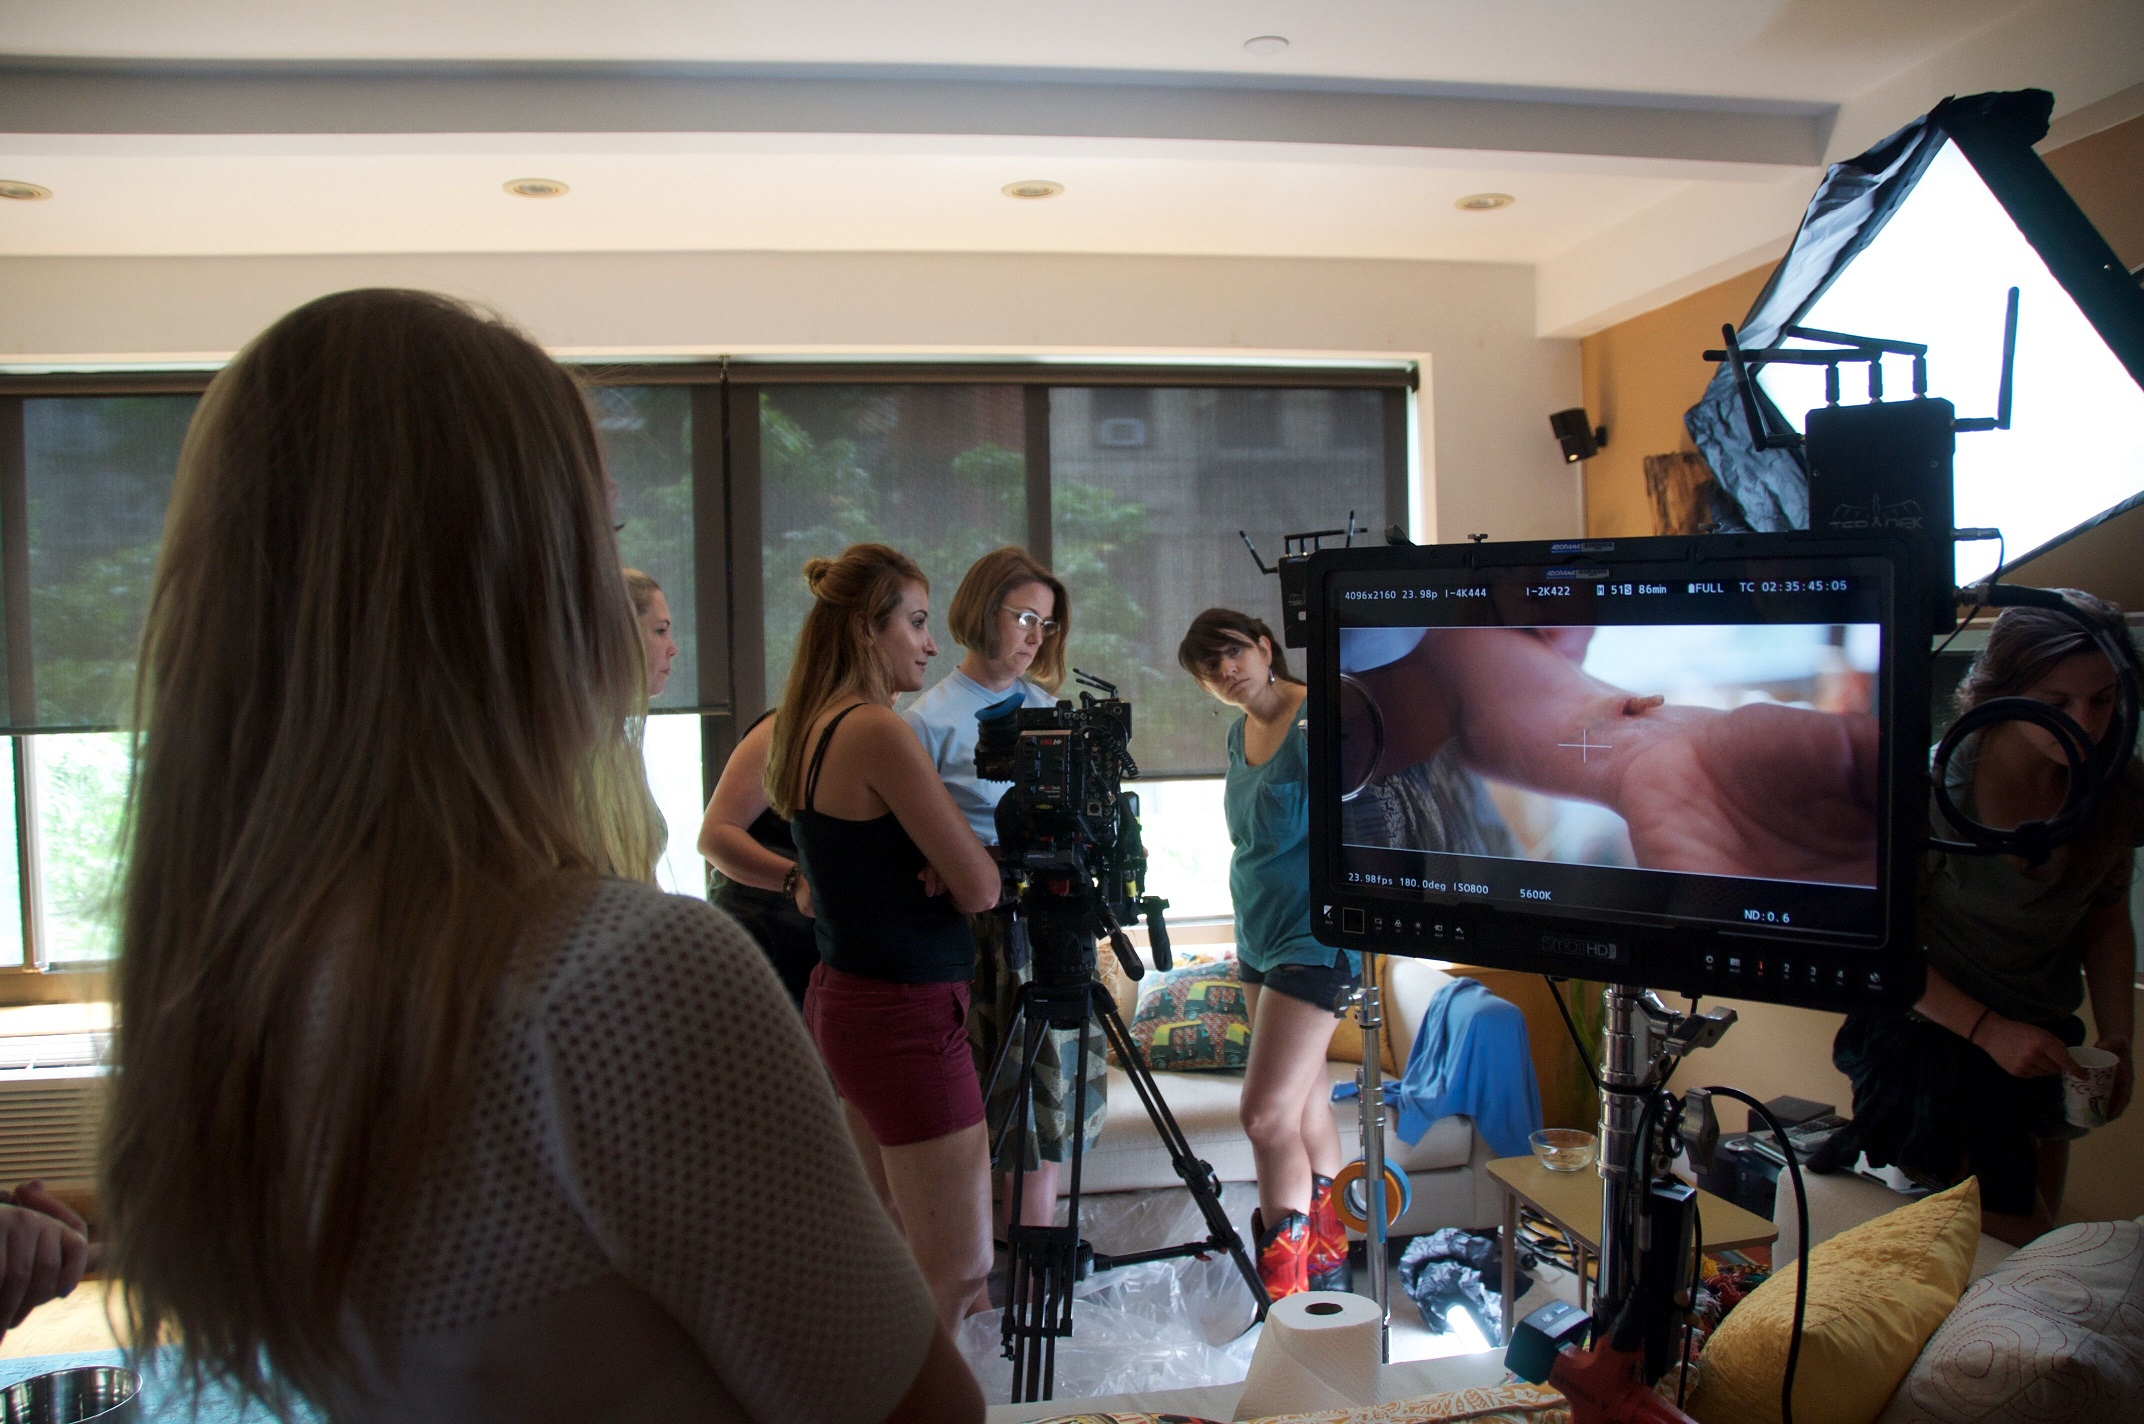 Behind the scenes of Pay to Stay